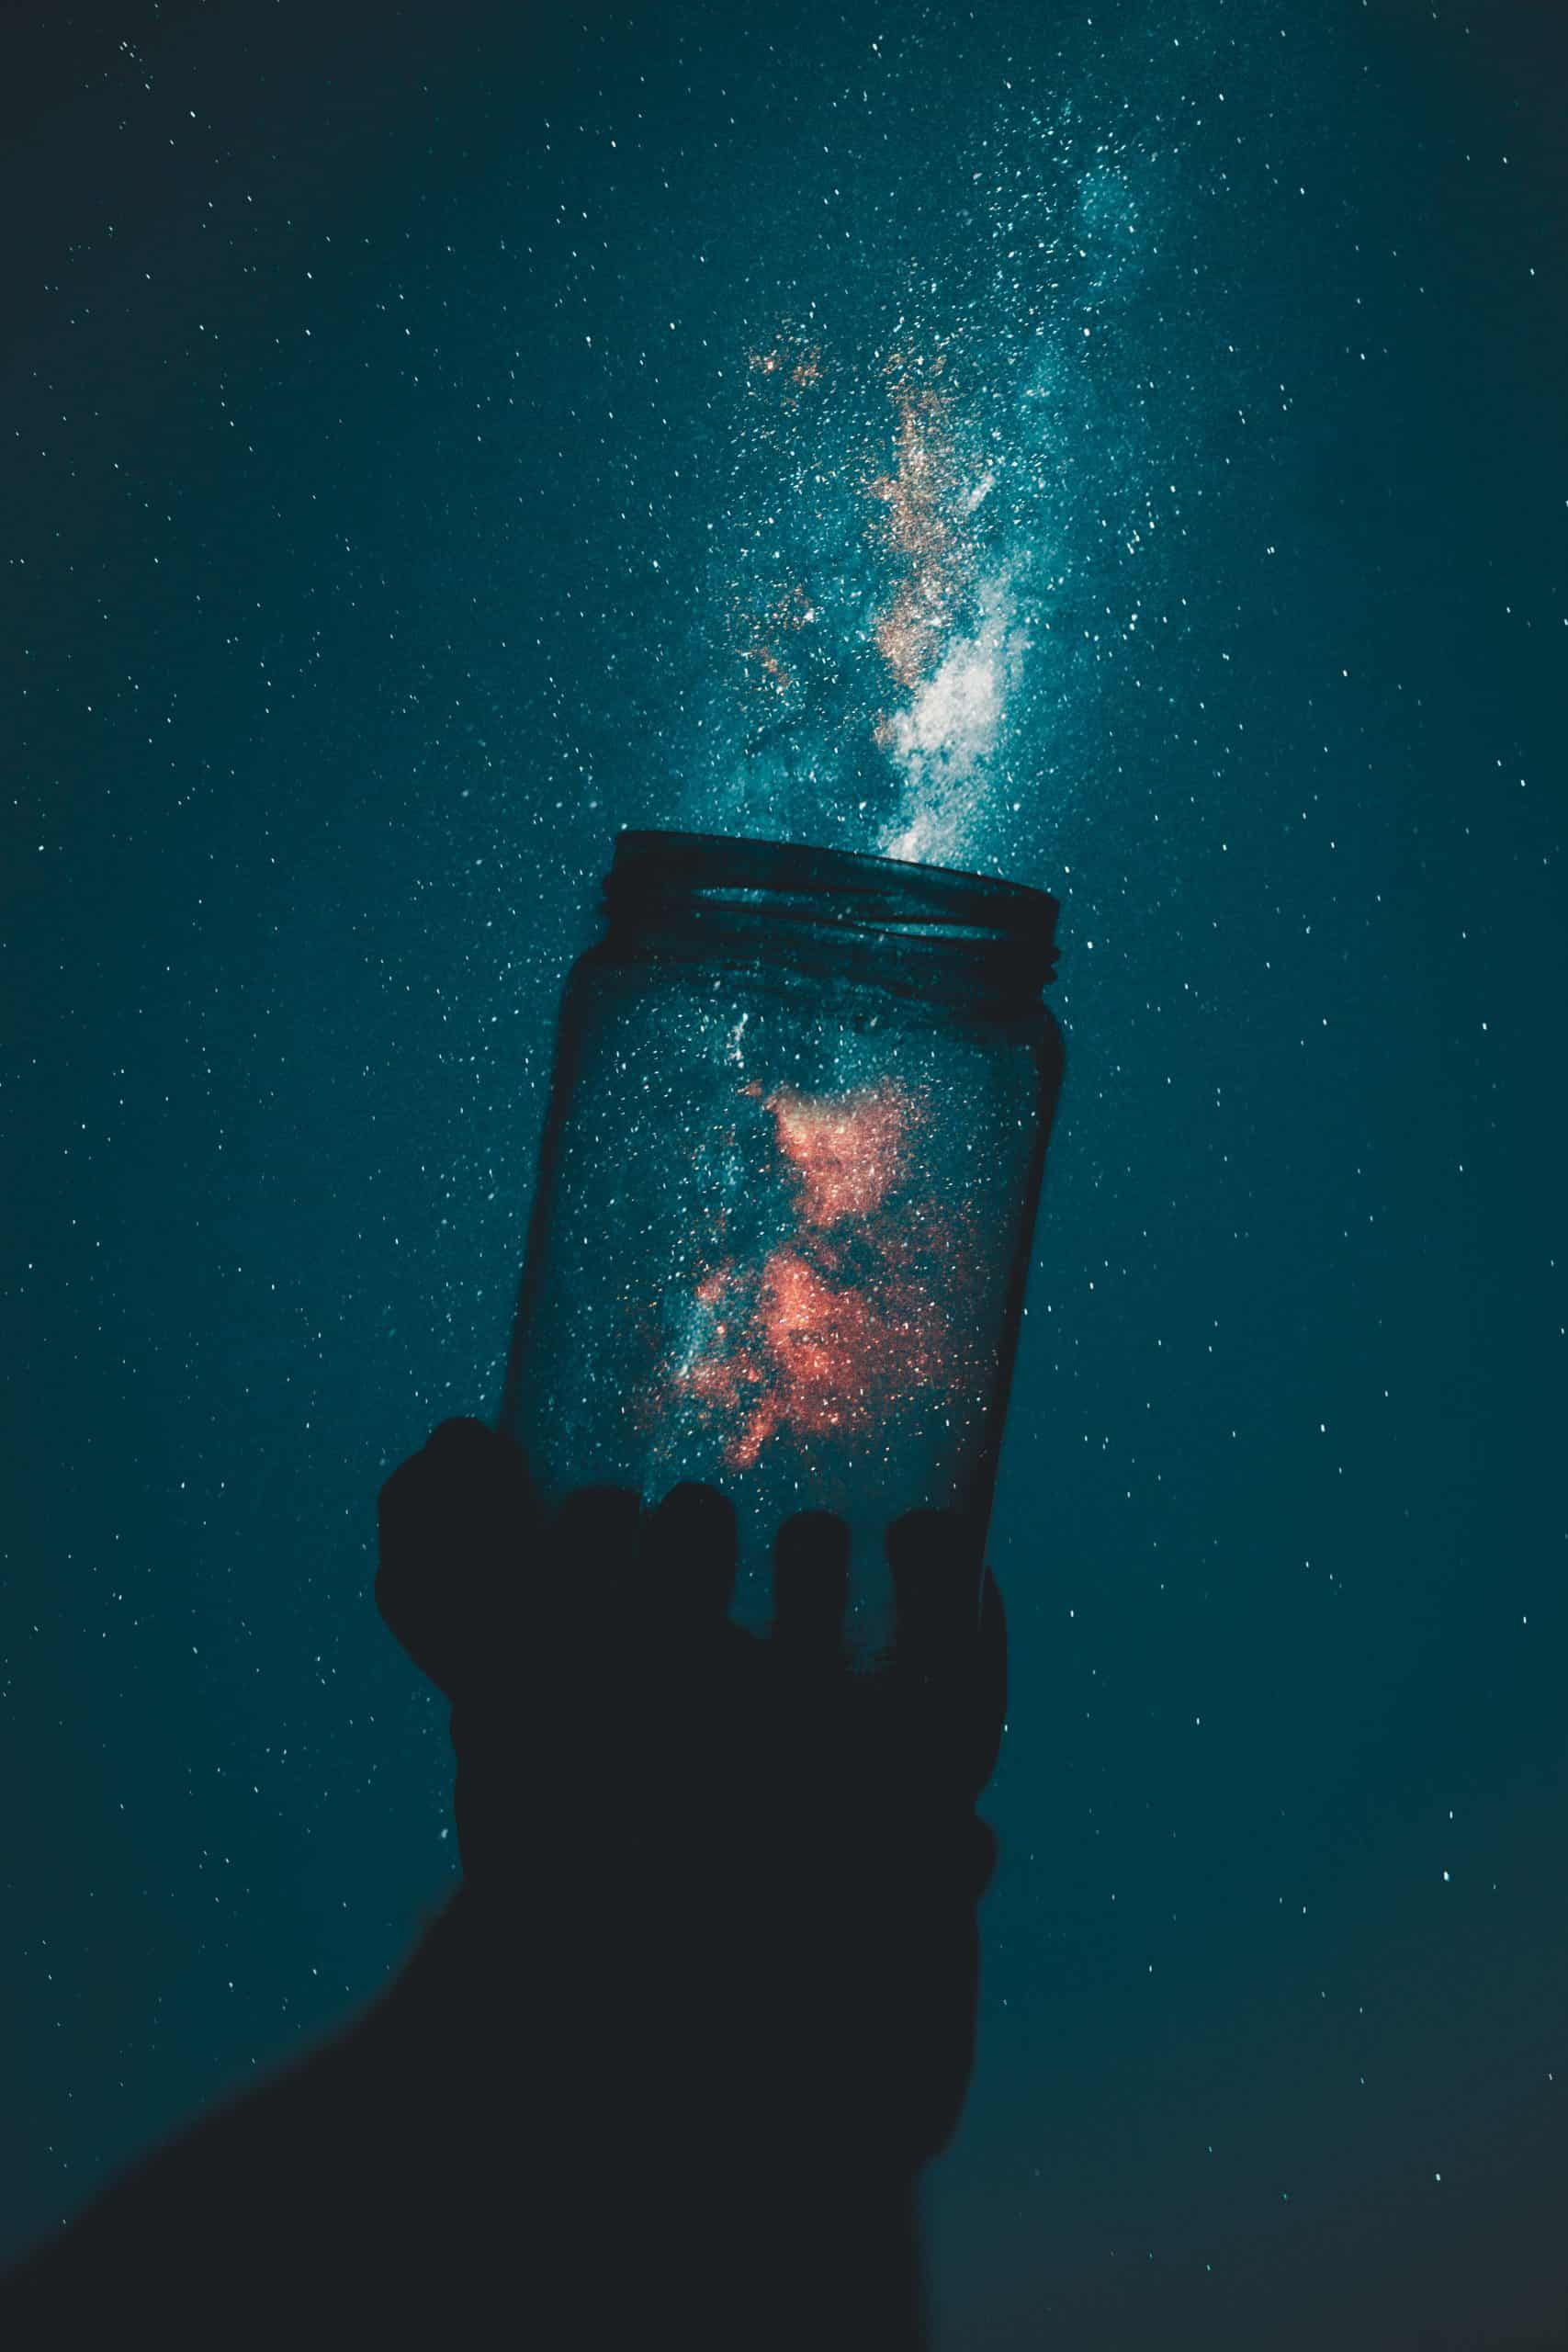 silhouette of hand holding a glass jar pointed at night sky, capturing stars